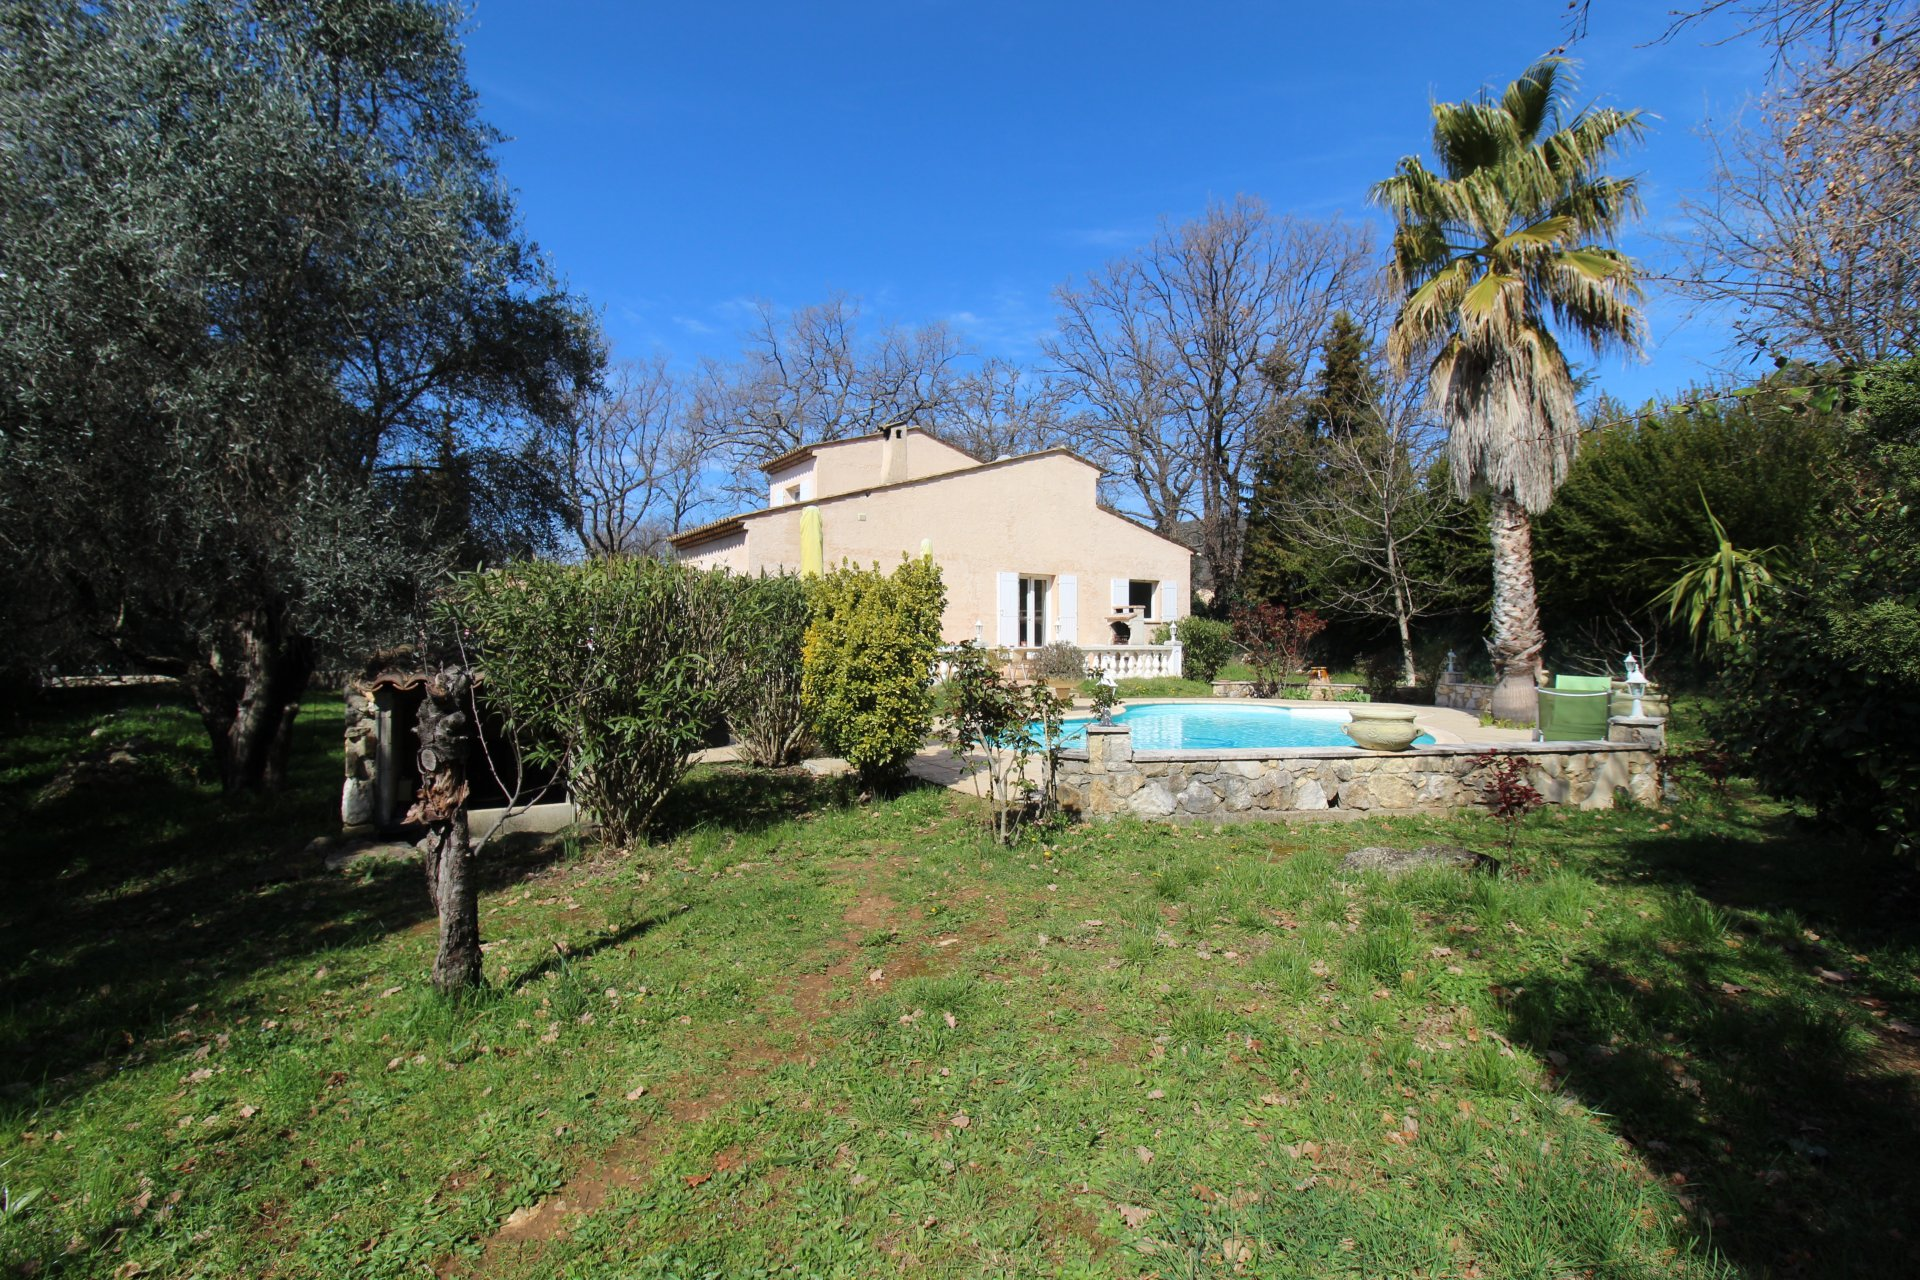 3 Bedroomed Villa with pool and land of 1500m² - SAINT CEZAIRE SUR SIAGNE